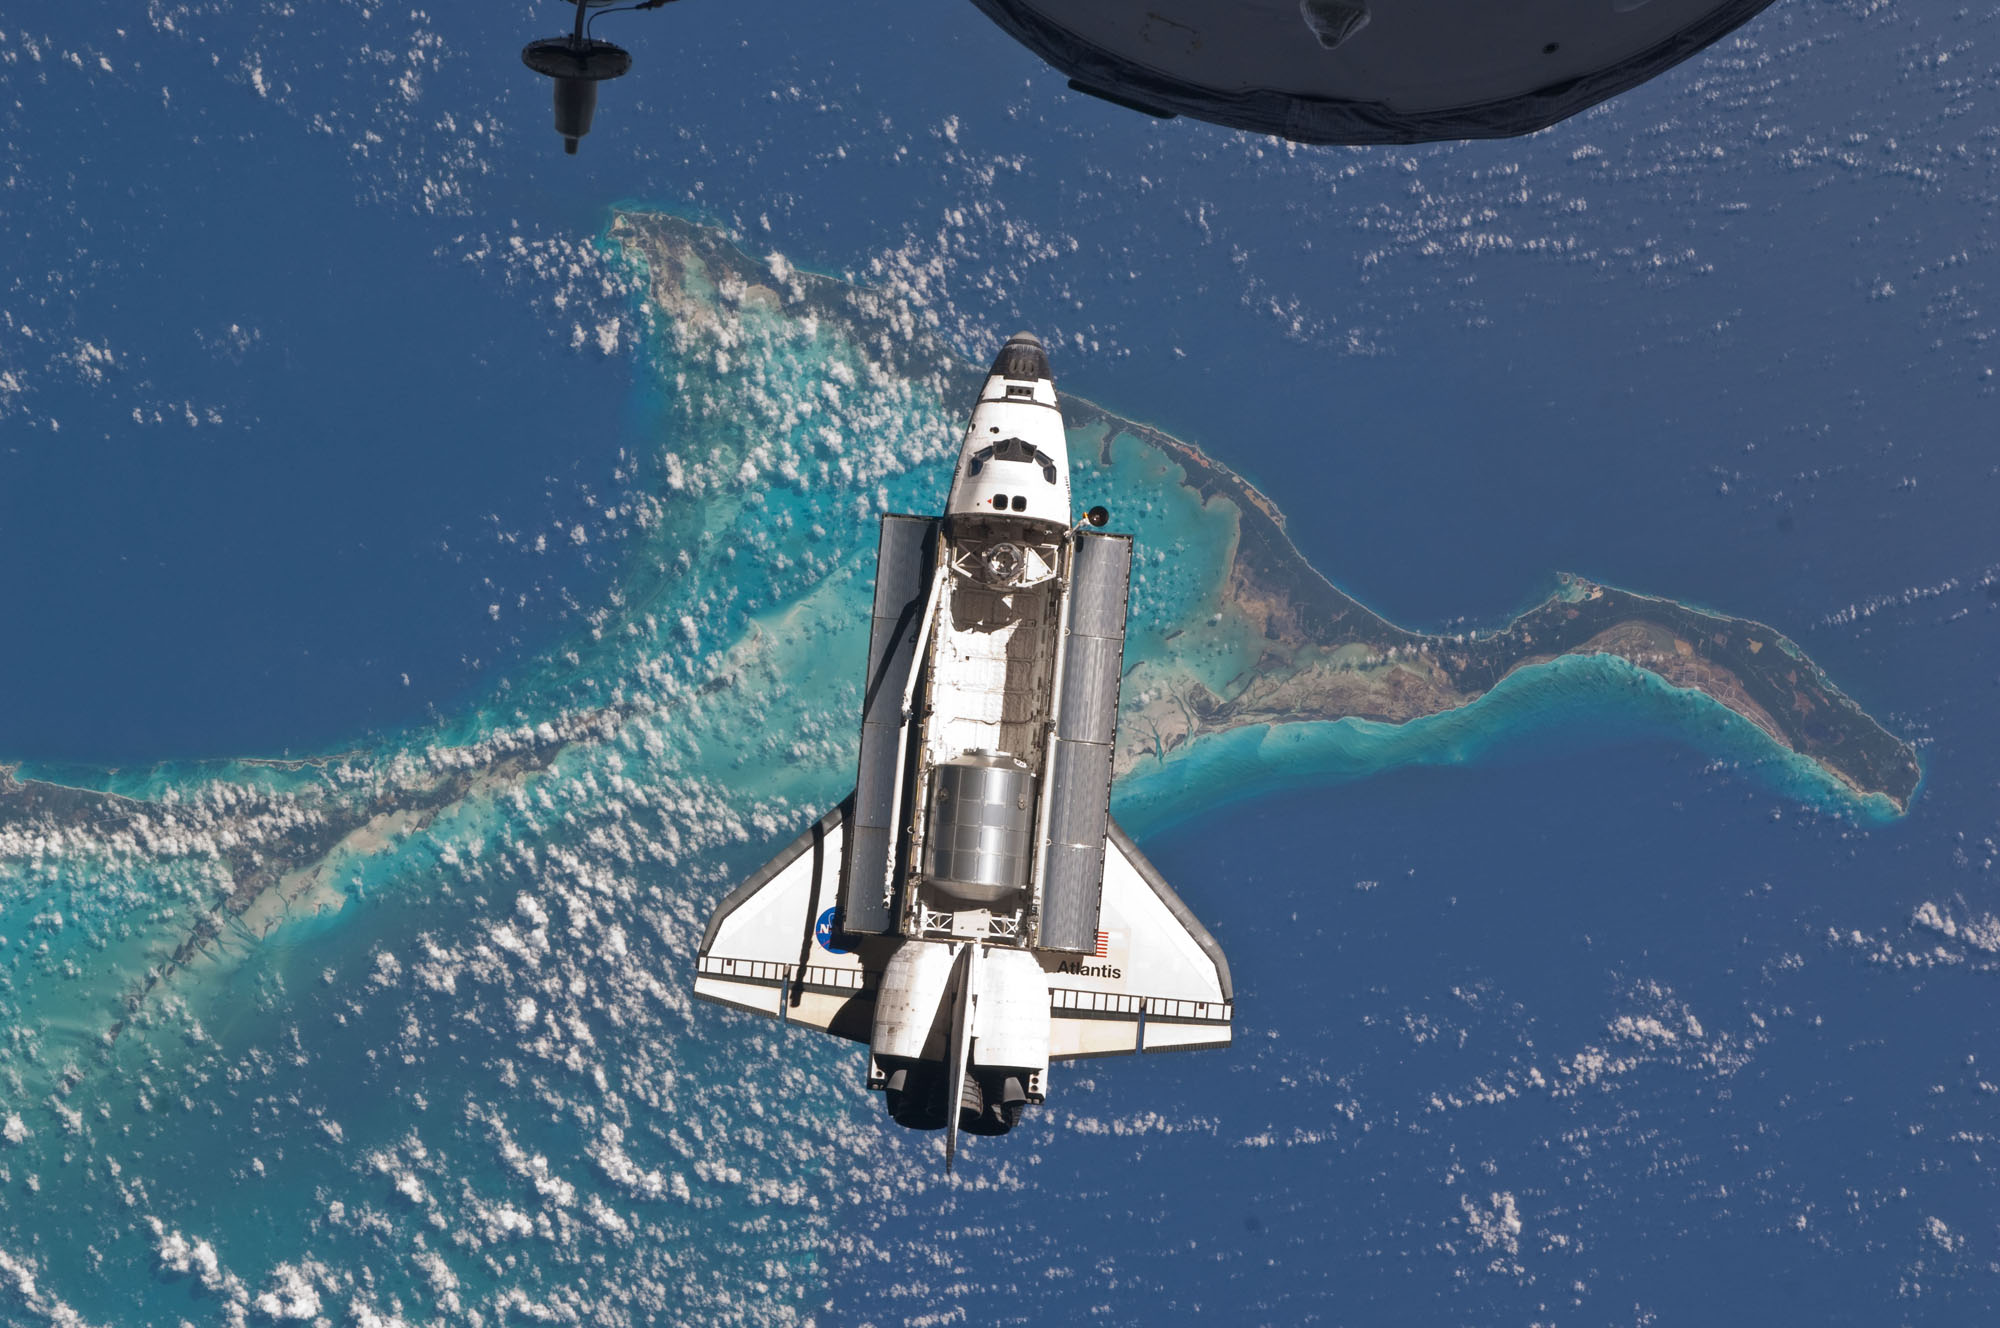 space shuttle atlantis accomplishments - photo #31